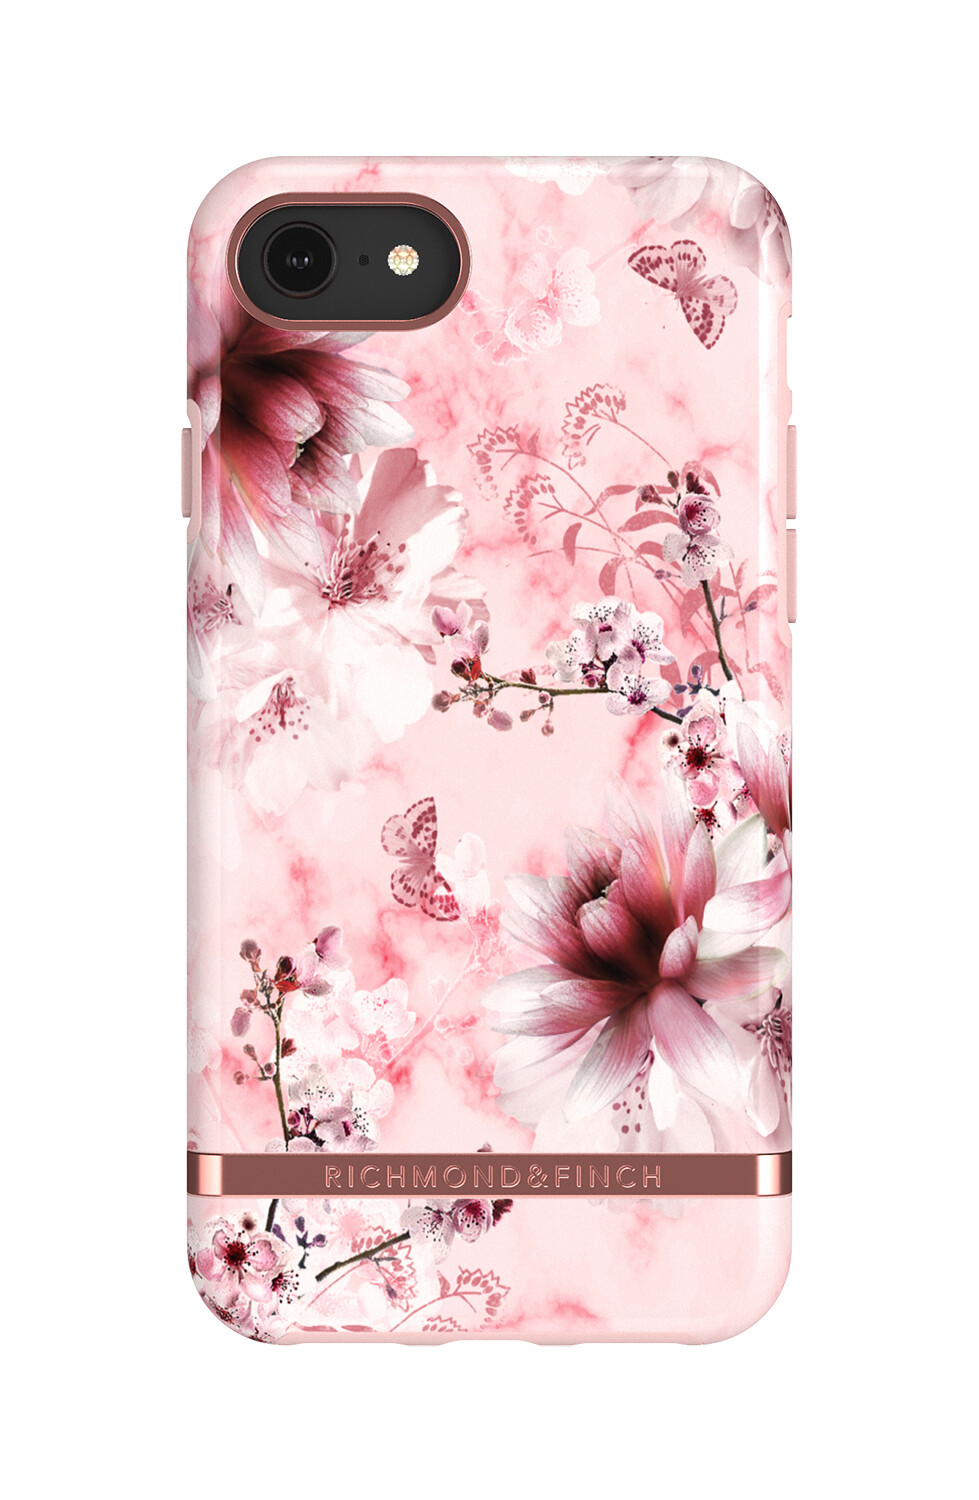 Richmond & Finch Fashion Protective Case for iPhone 6/7/8 Plus